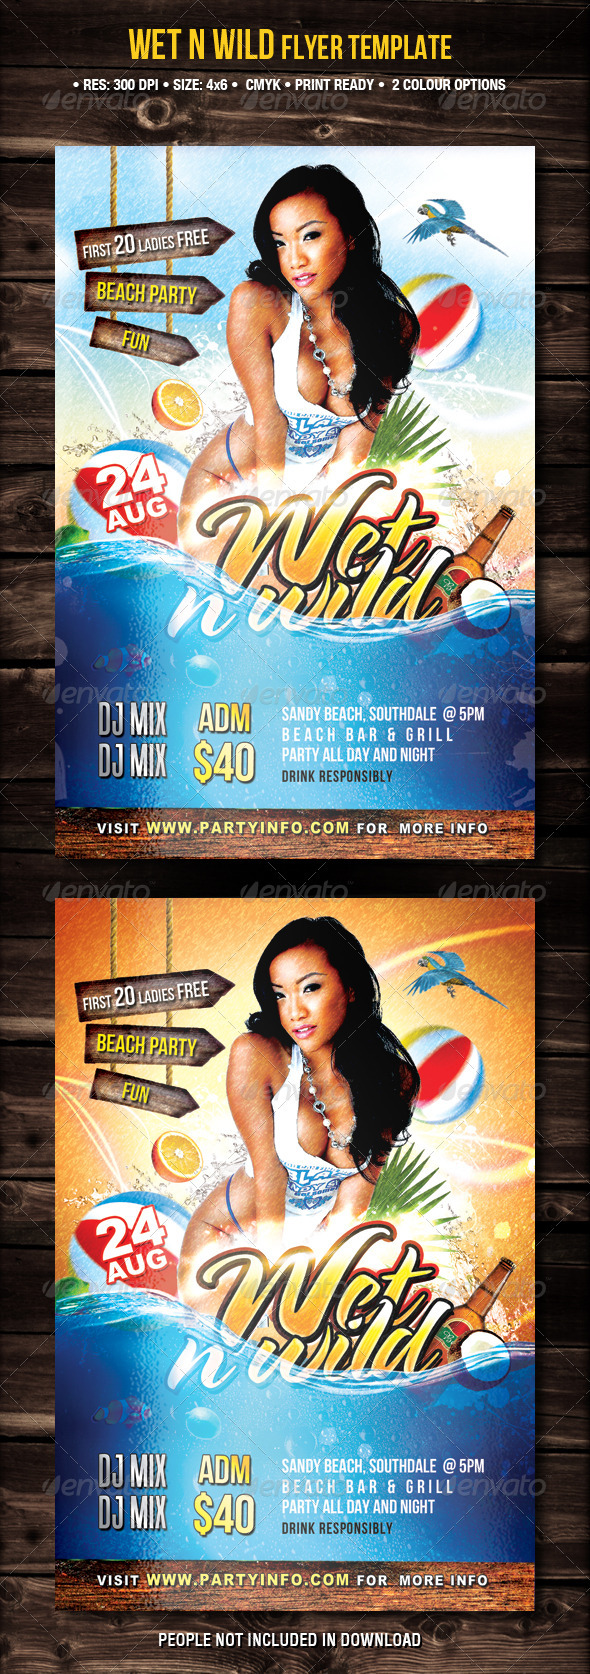 Wet N Wild Party Flyer - Flyers Print Templates